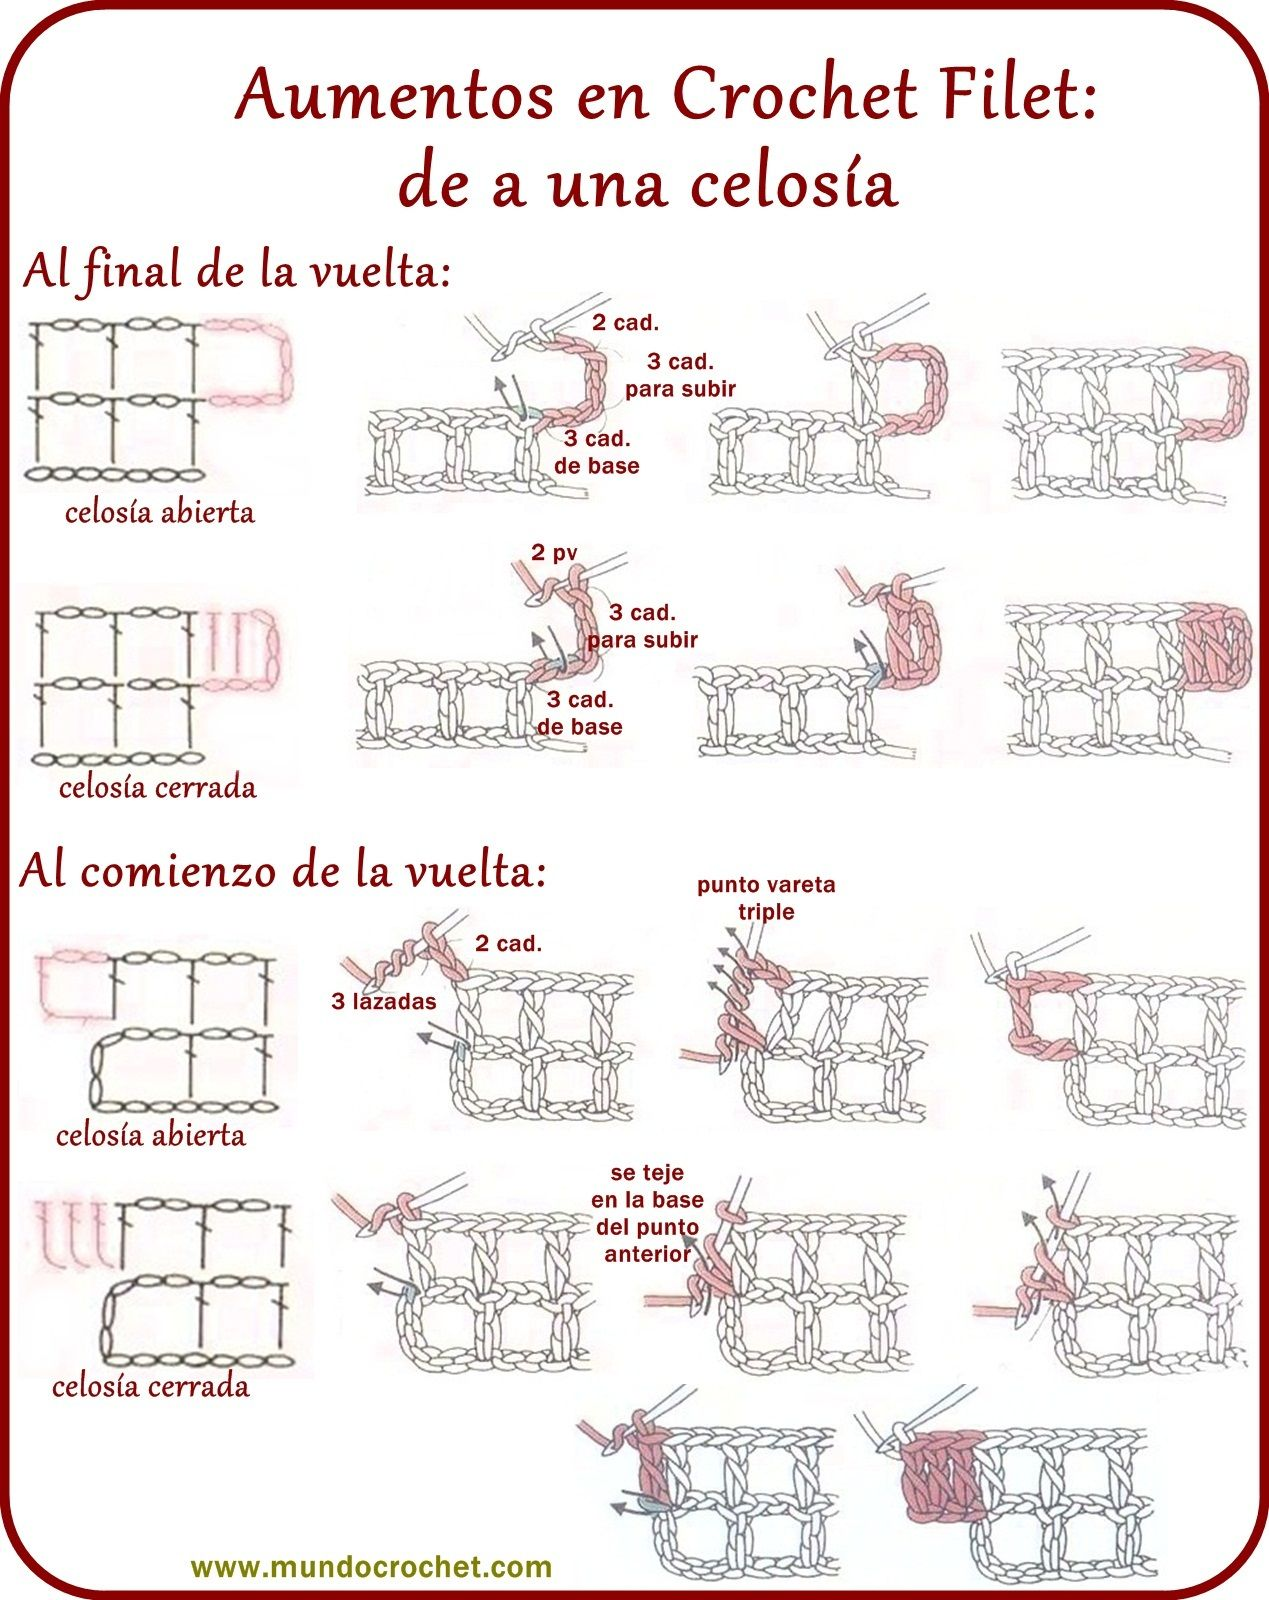 Crochet Filet | Crochet | Pinterest | Ganchillo, Puntos y Tejido